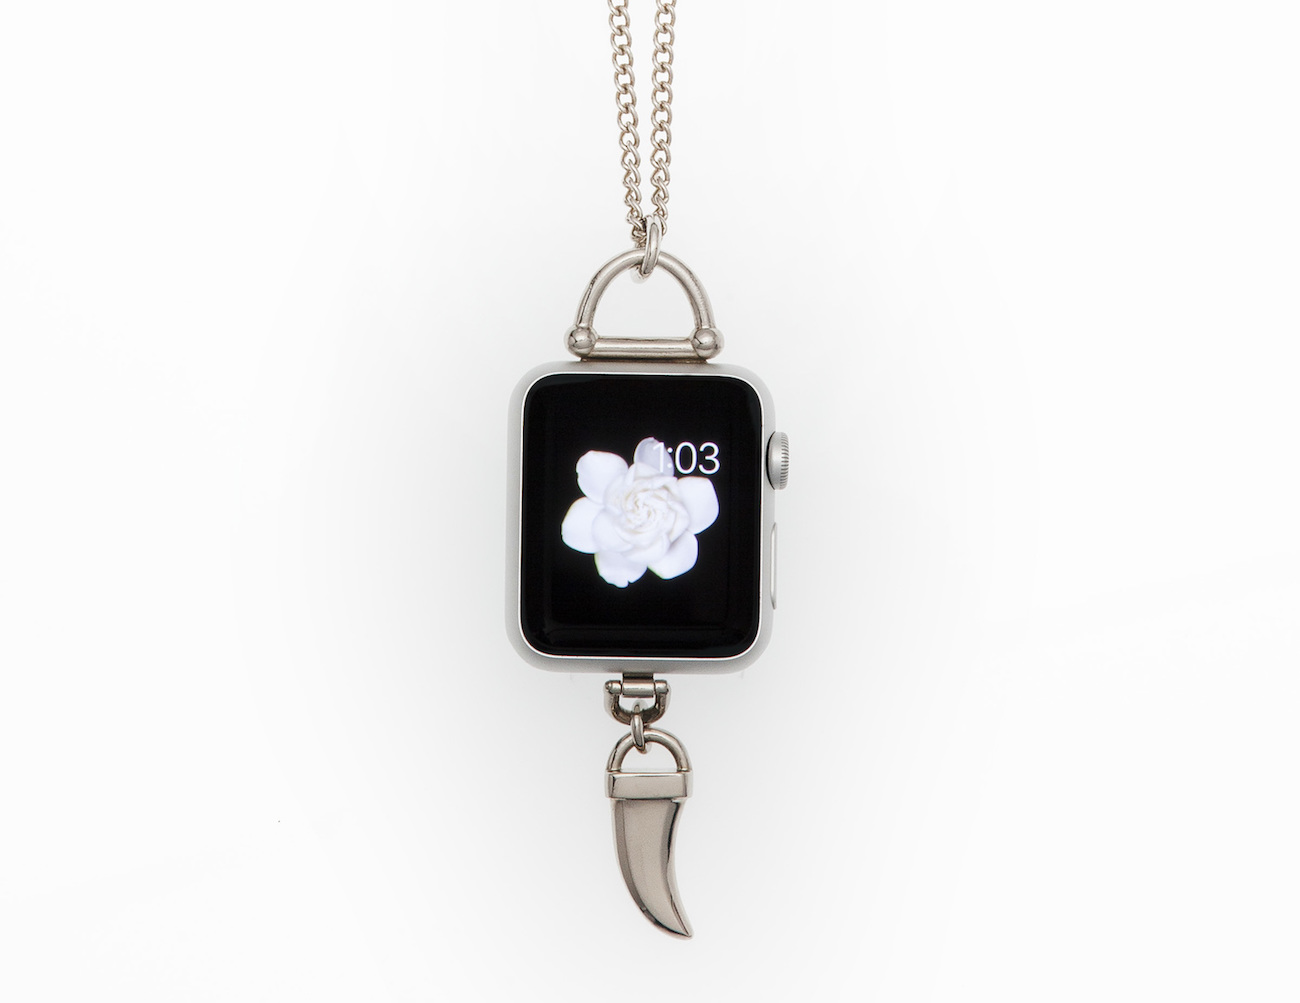 horn-charm-pendant-necklace-for-apple-watch-by-bucardo-05